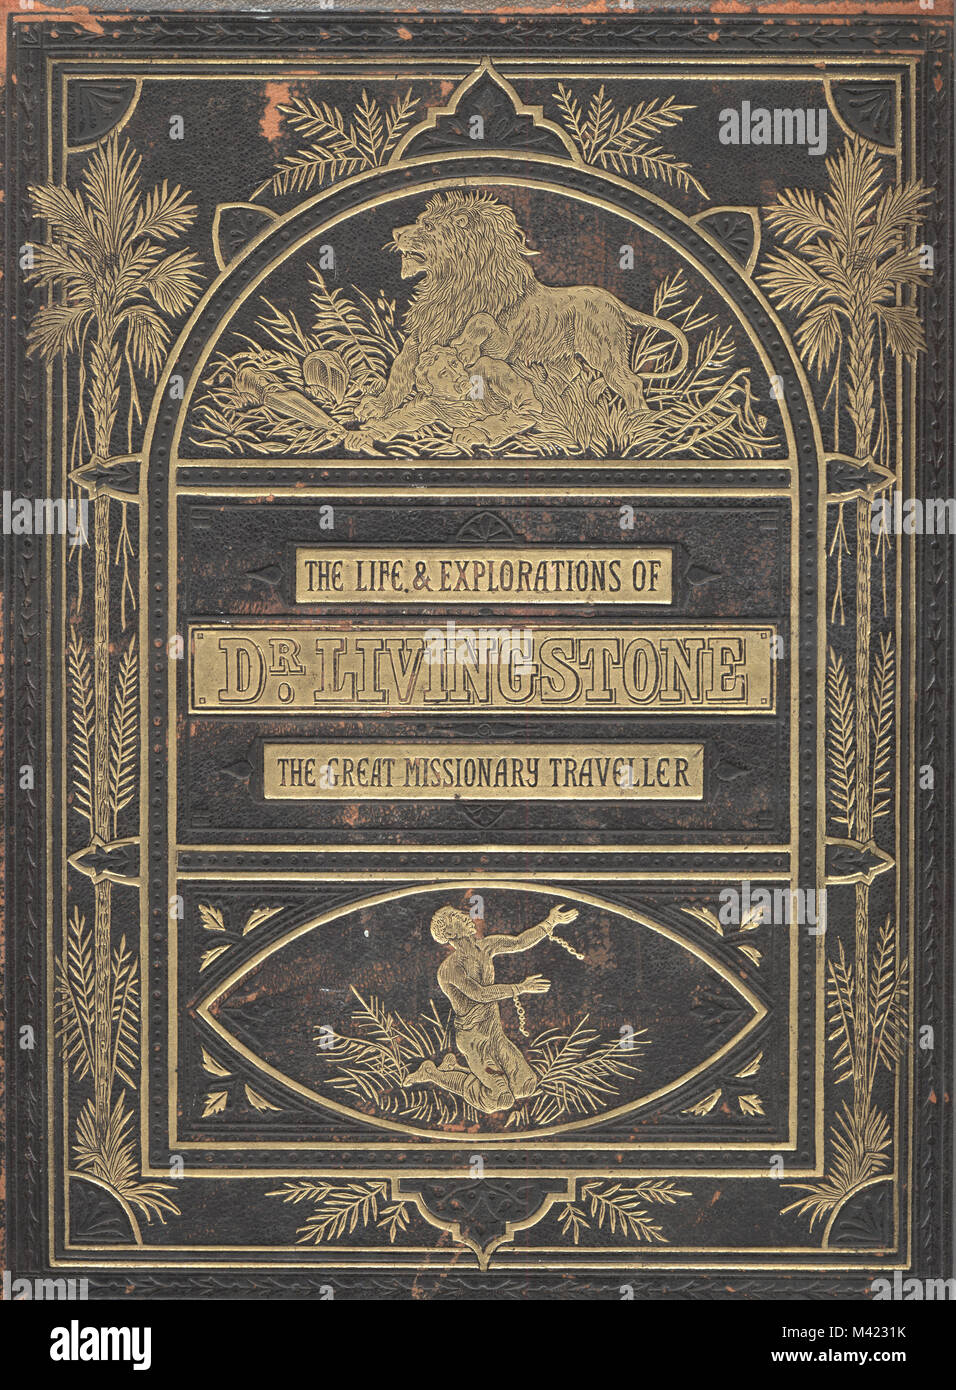 Book cover of Life and Explorations of Dr David Livingstone - Stock Image